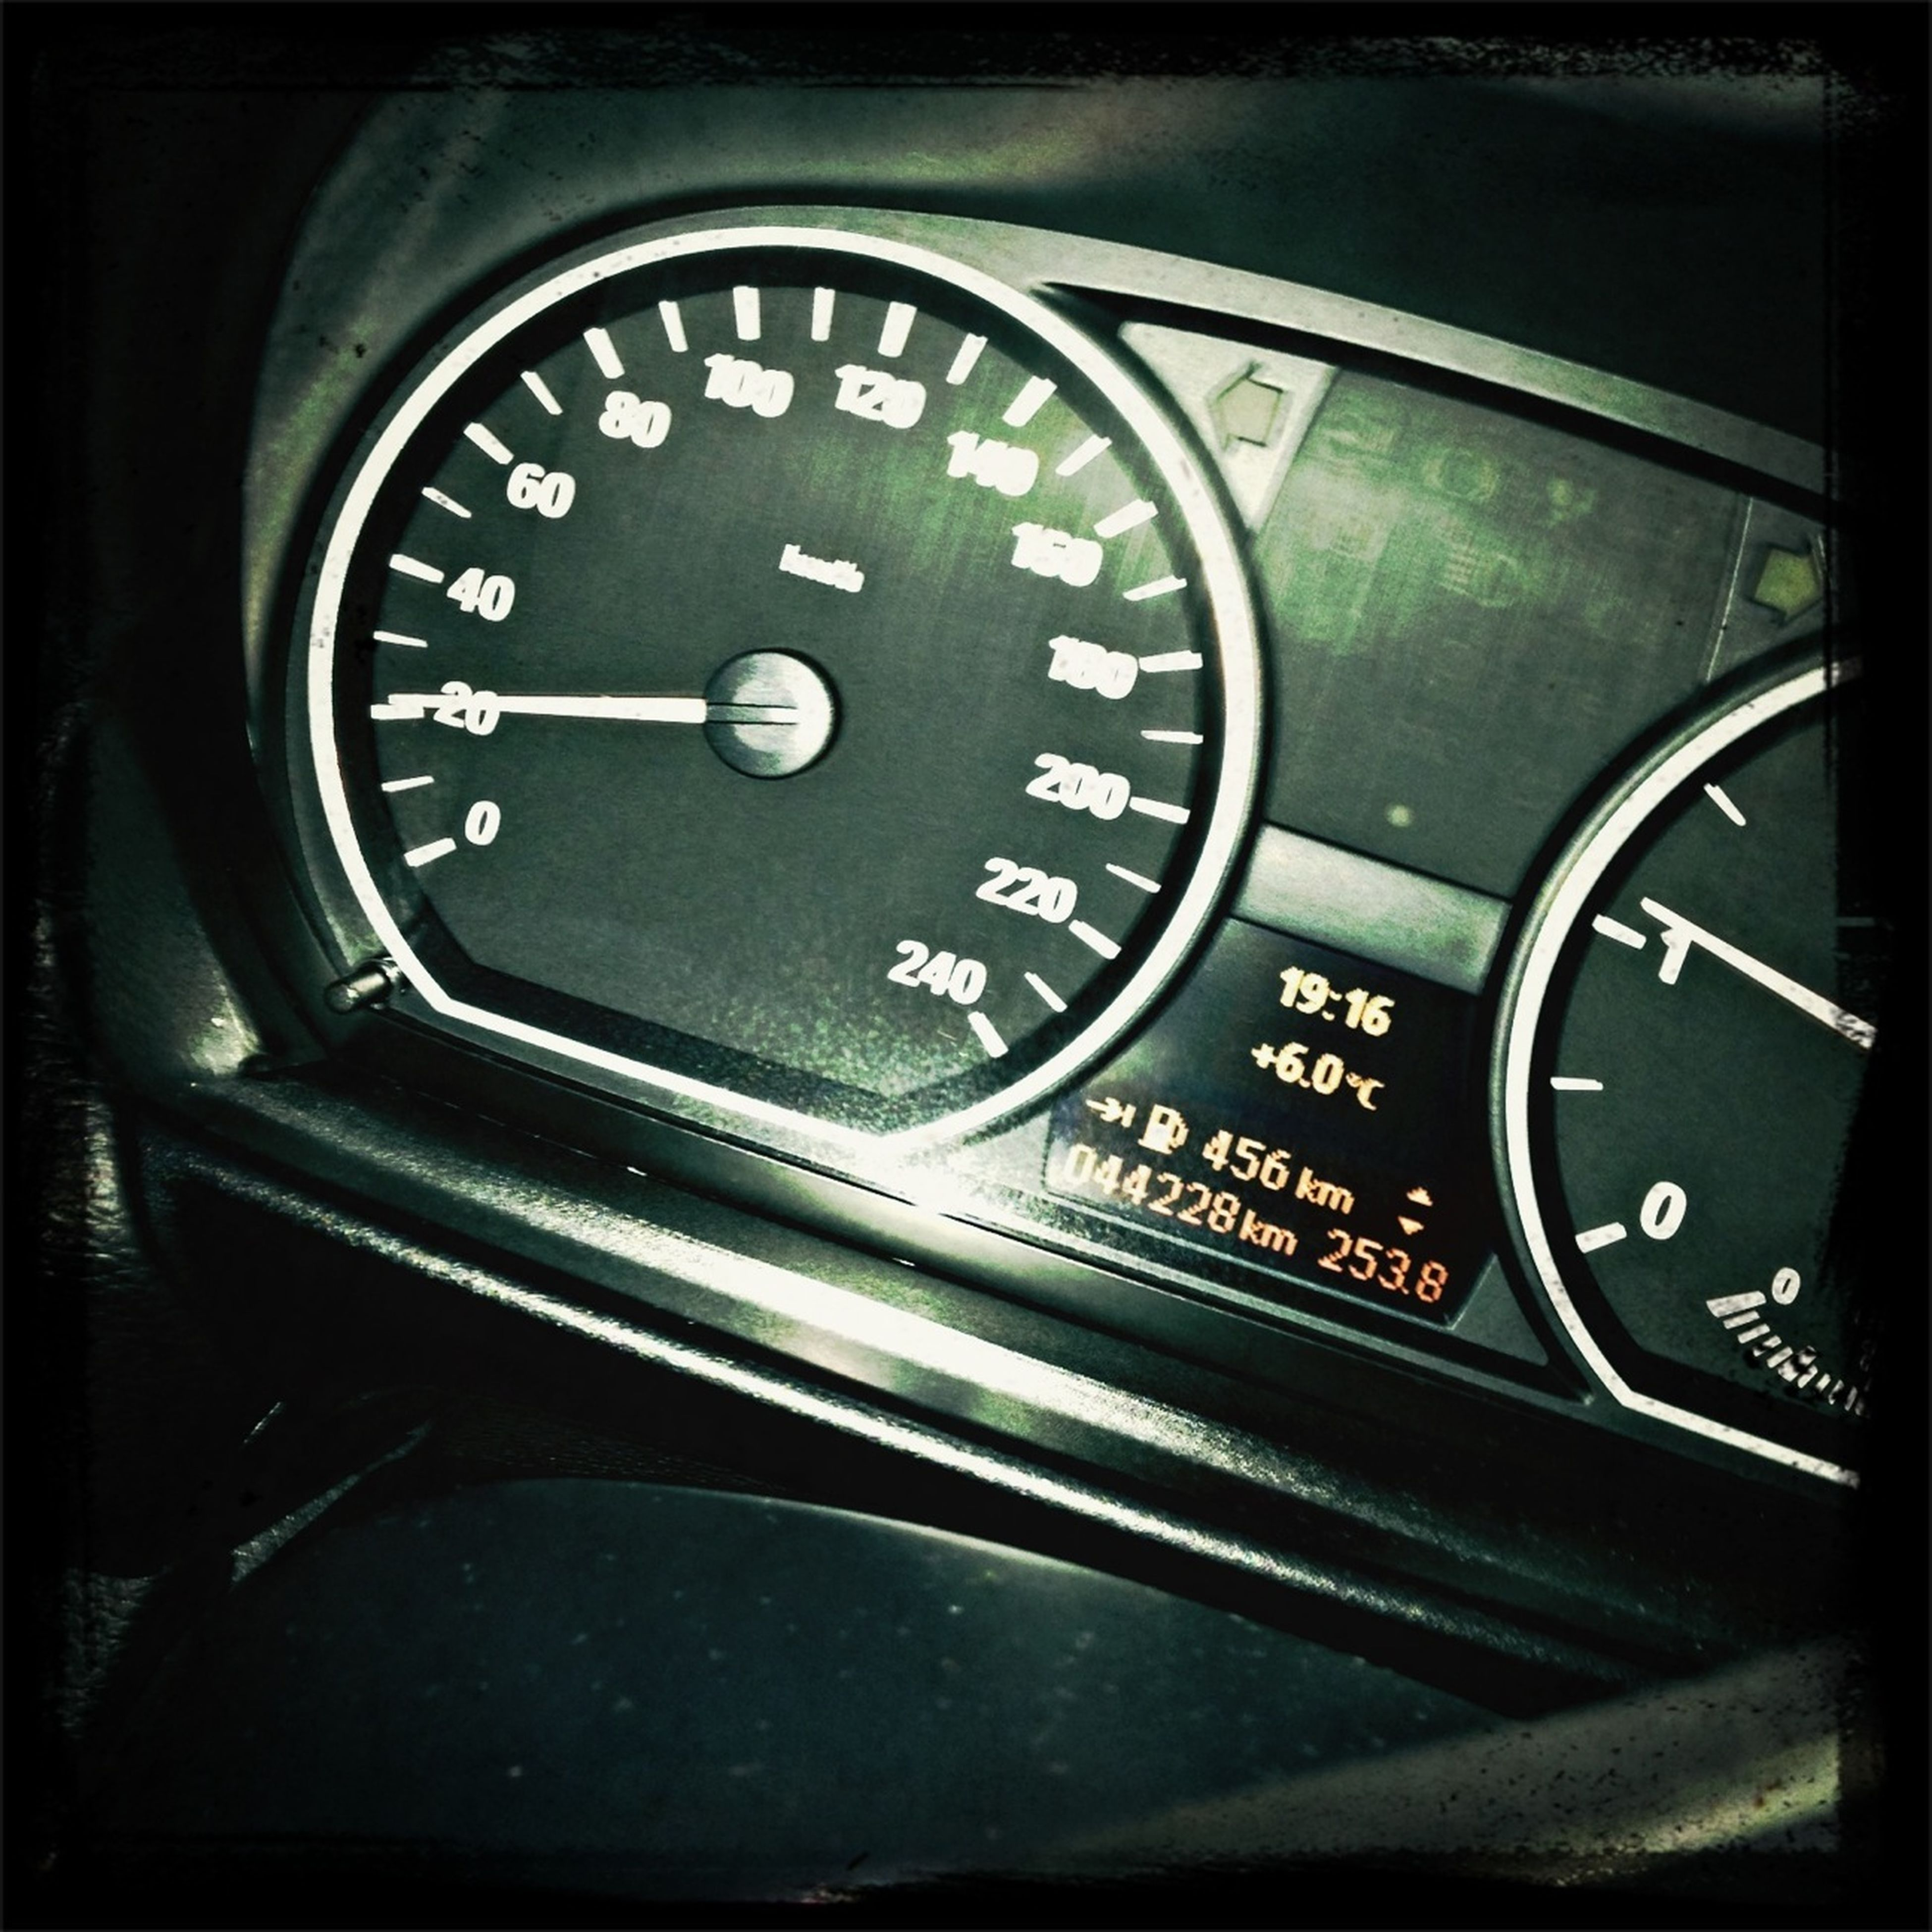 communication, technology, number, indoors, text, close-up, old-fashioned, clock, time, transportation, retro styled, western script, speedometer, car, instrument of measurement, car interior, accuracy, connection, part of, metal